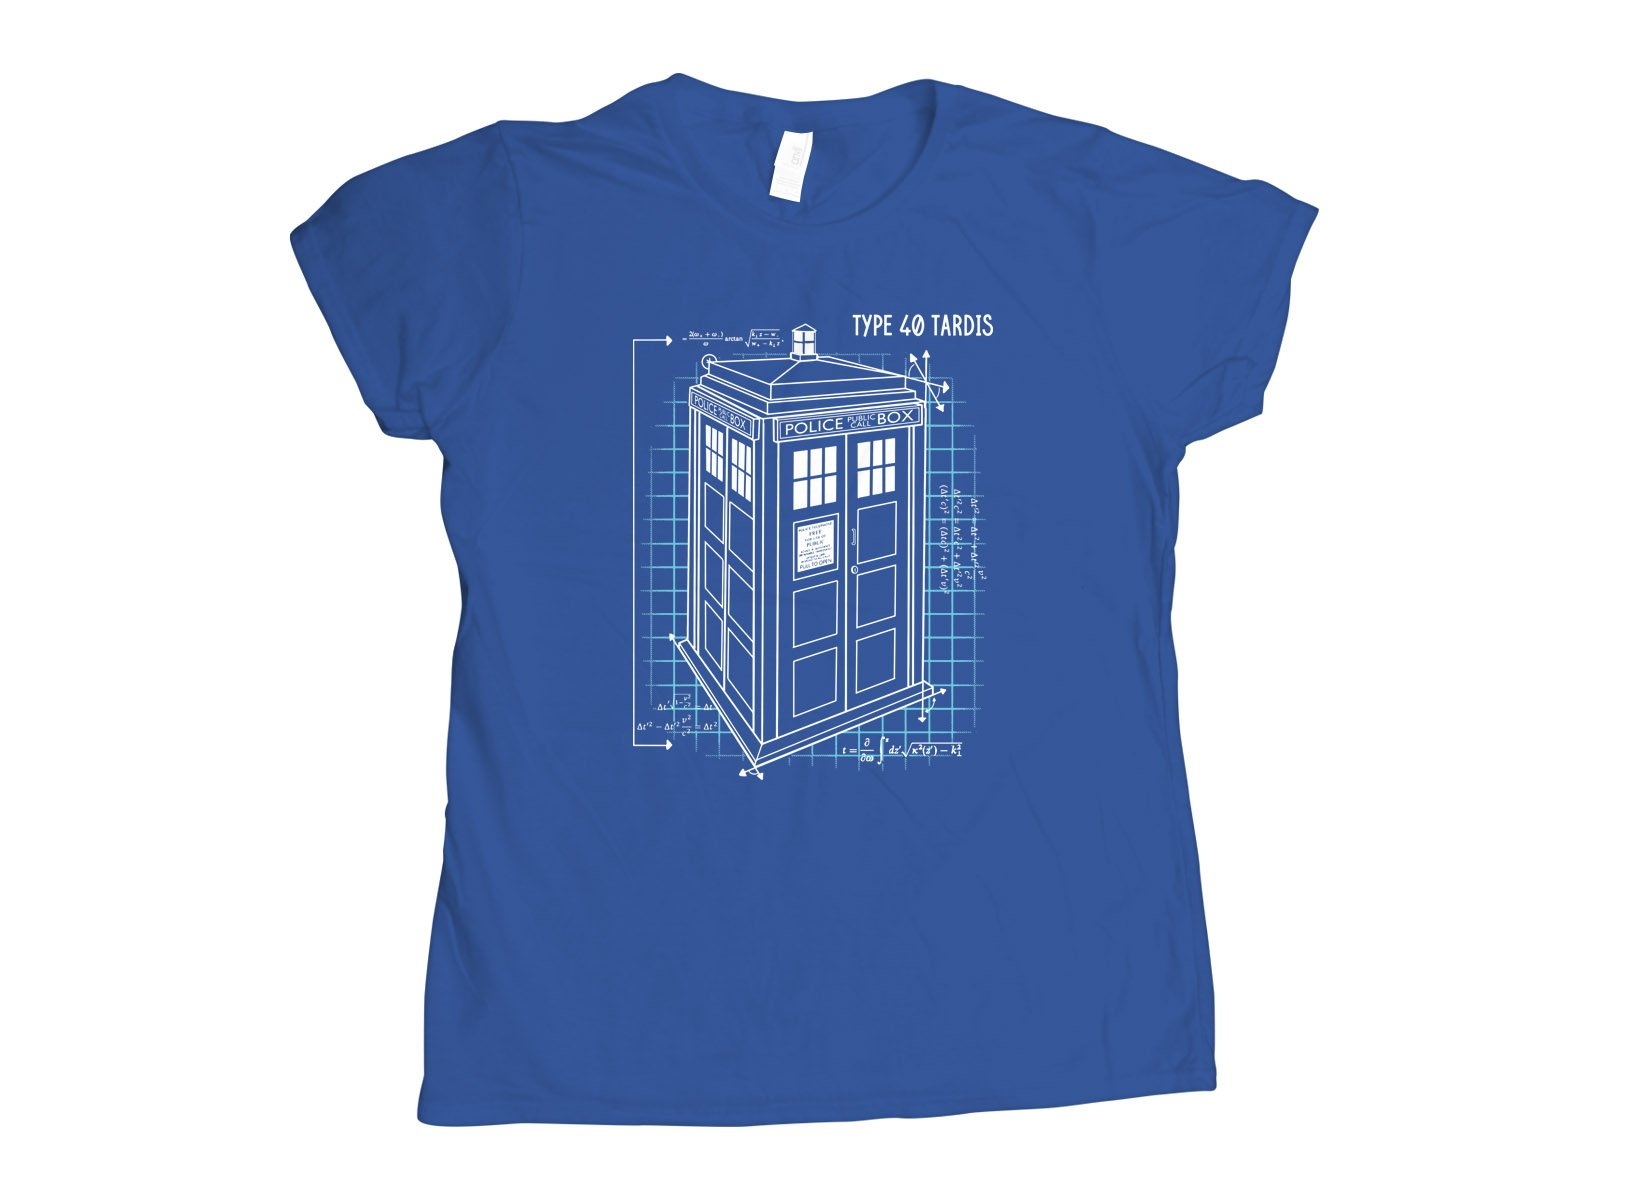 Type 40 Tardis on Womens T-Shirt